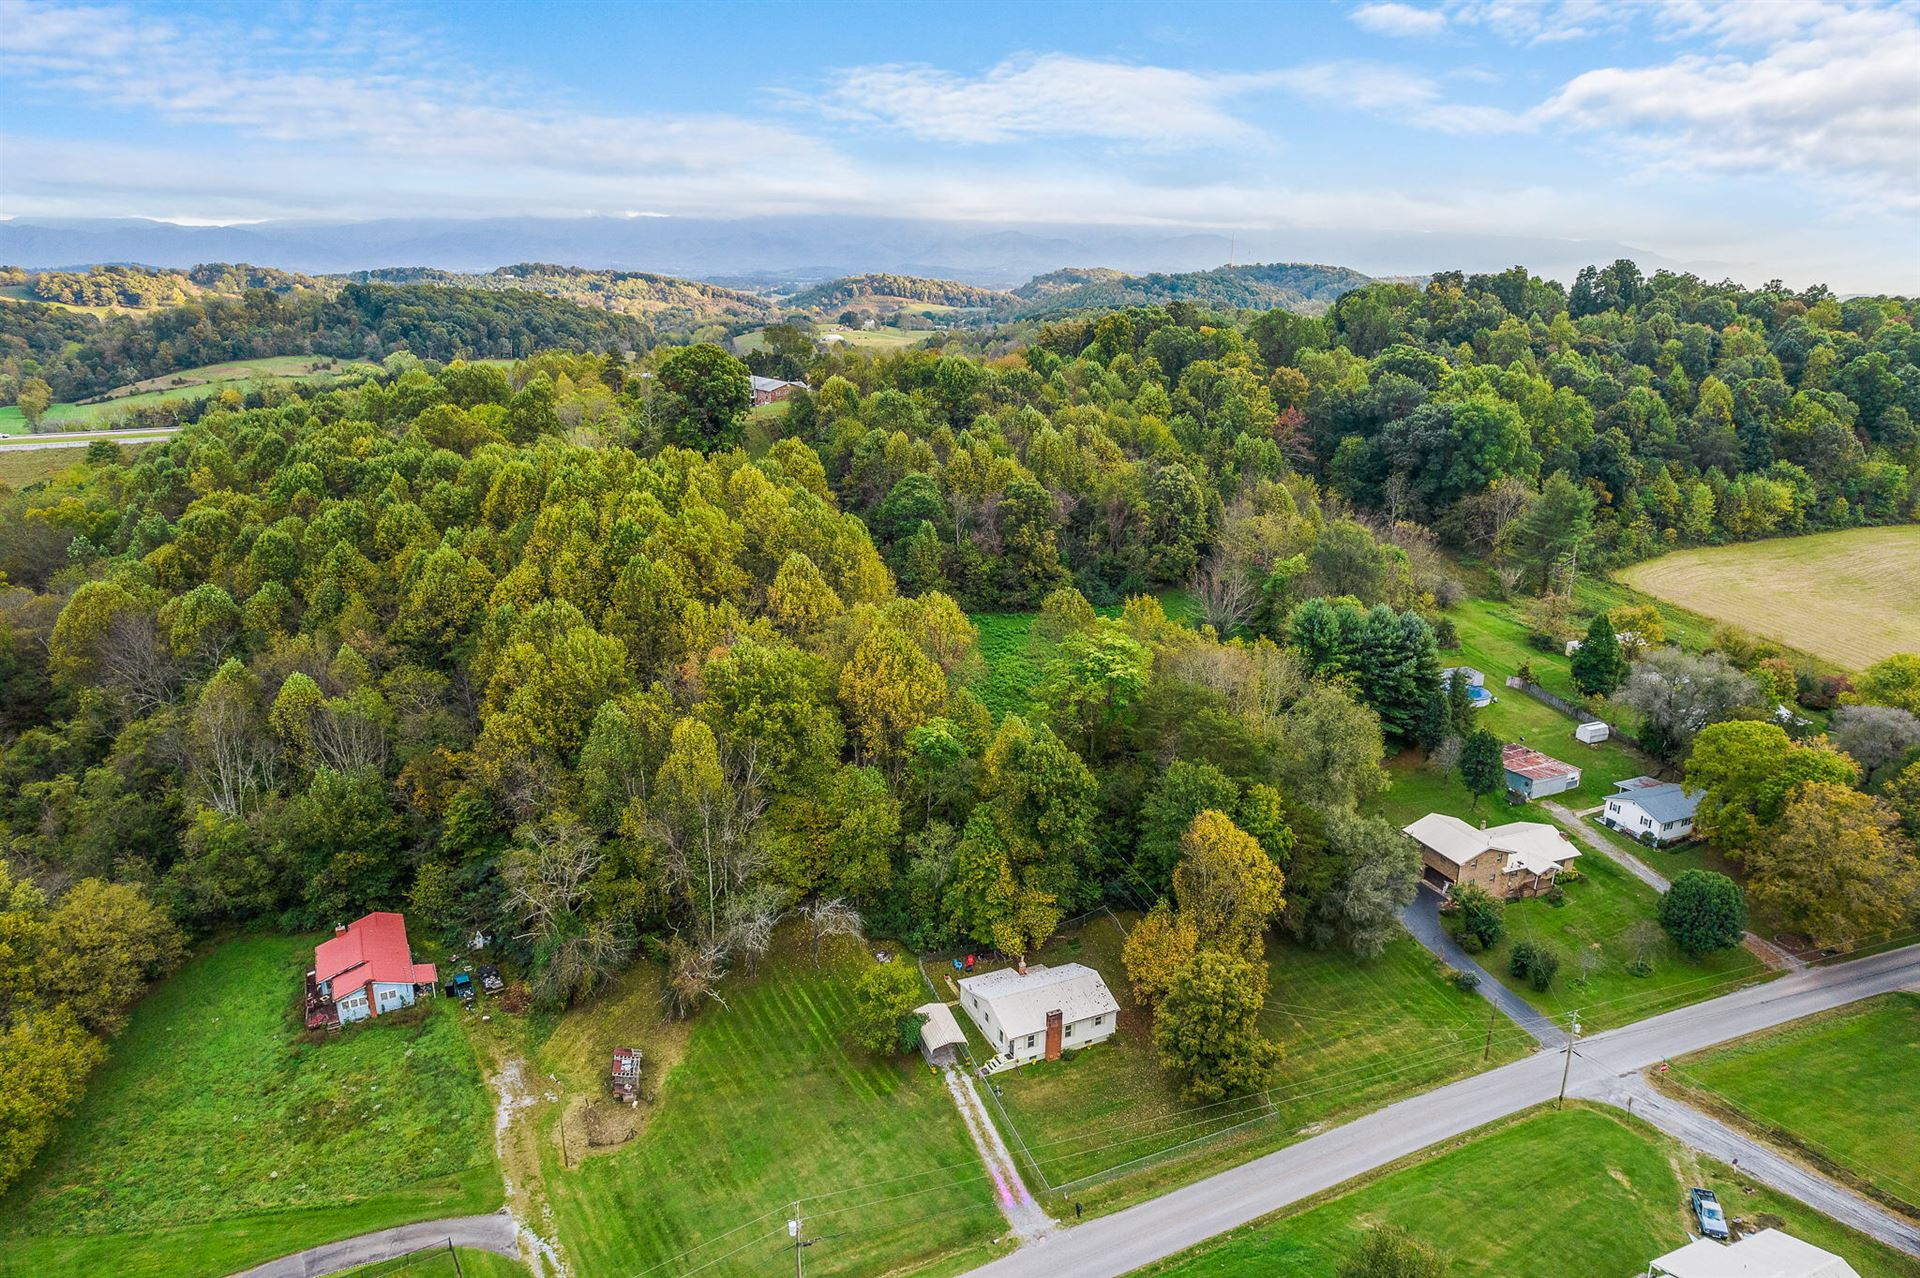 Photo of 6160 Old Stage Road, Chuckey, TN 37641 (MLS # 9930362)